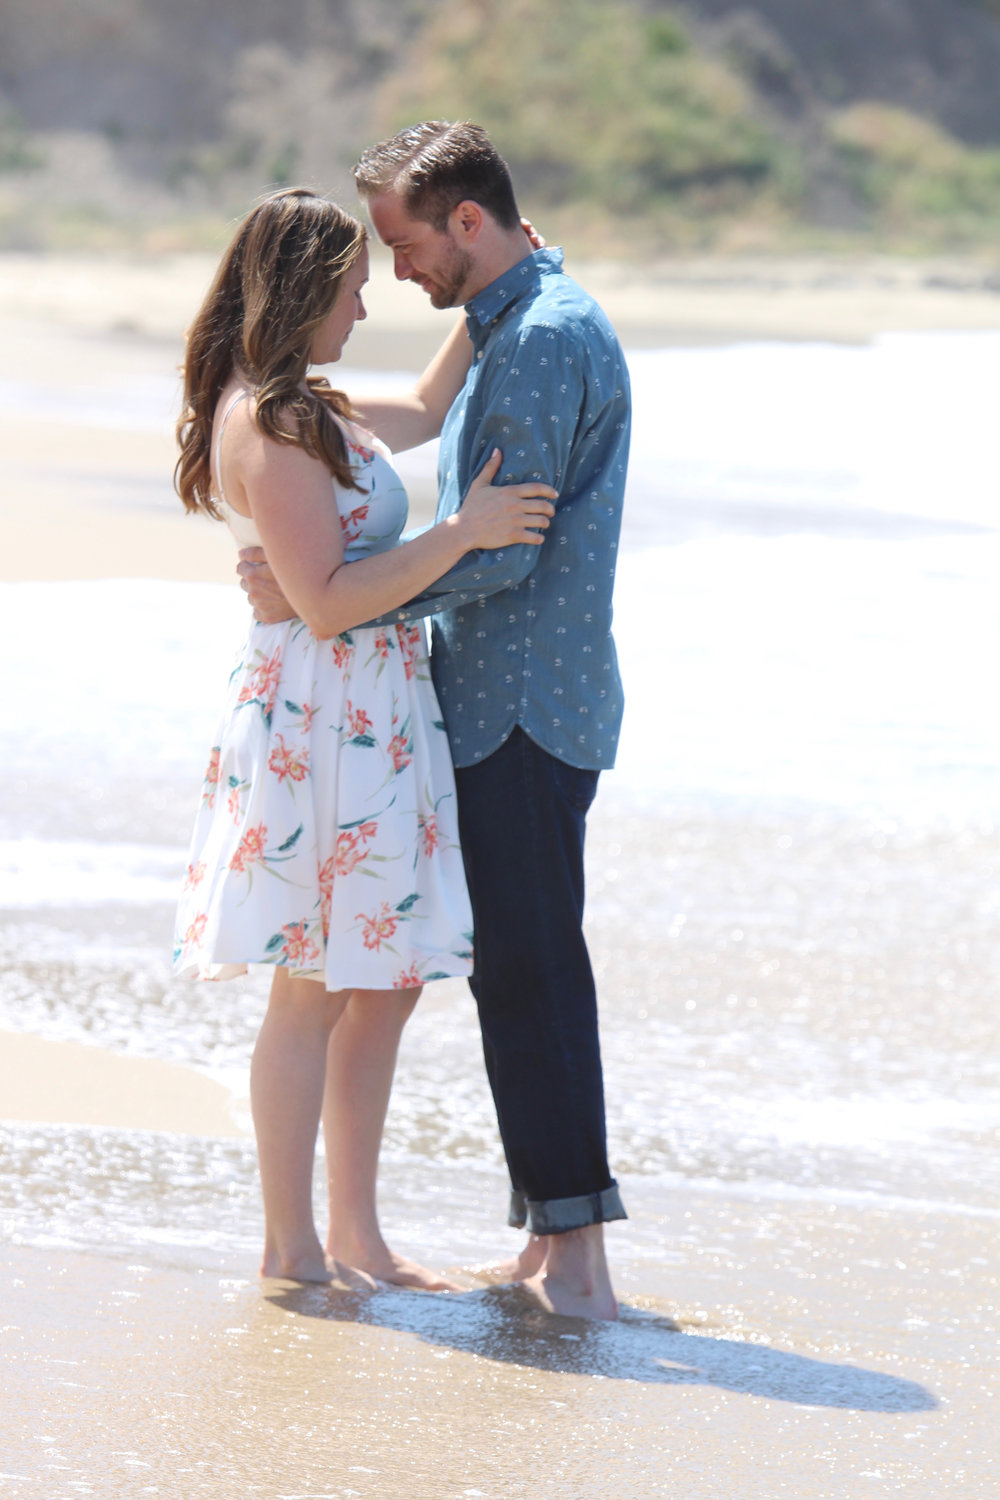 Kristin & Mike Engagement at the beach - 127.jpg